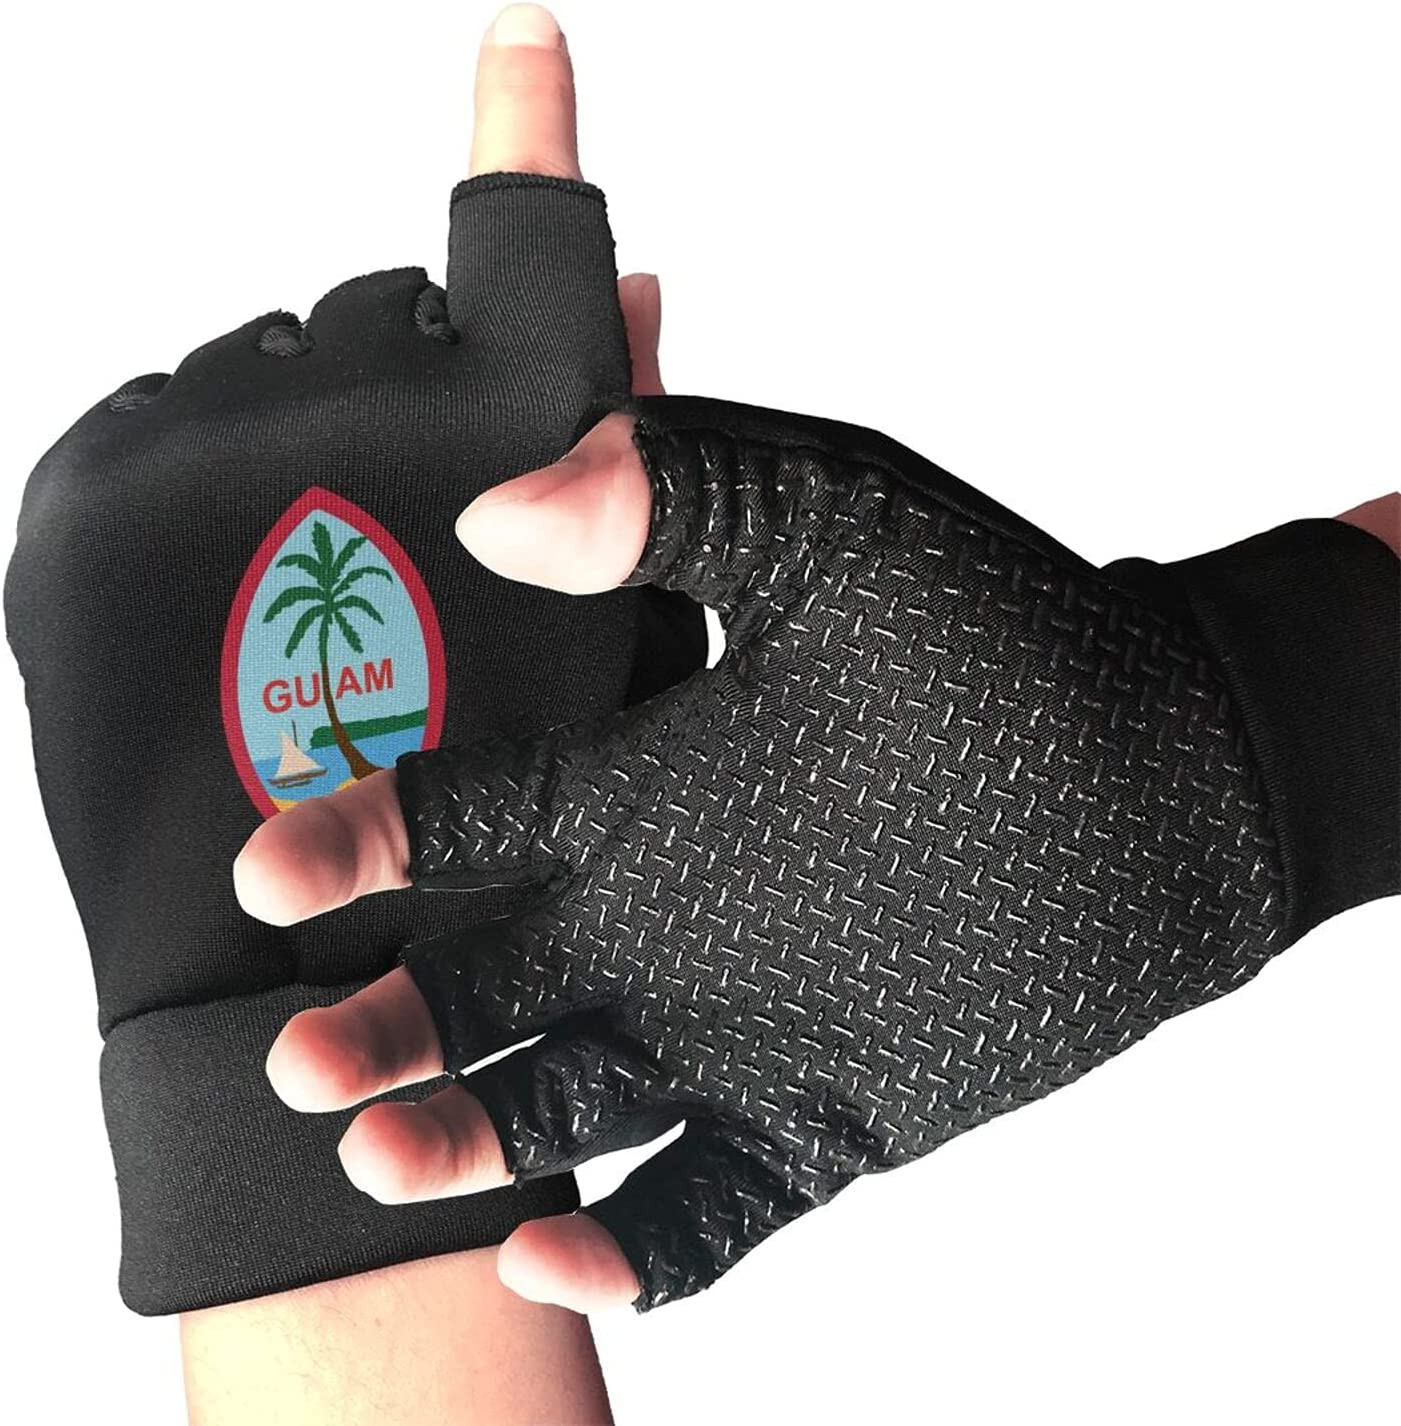 Guam Us Flag Sports Super beauty product restock quality top! depot Gloves Suitable B Warmth for Exercise Unisex